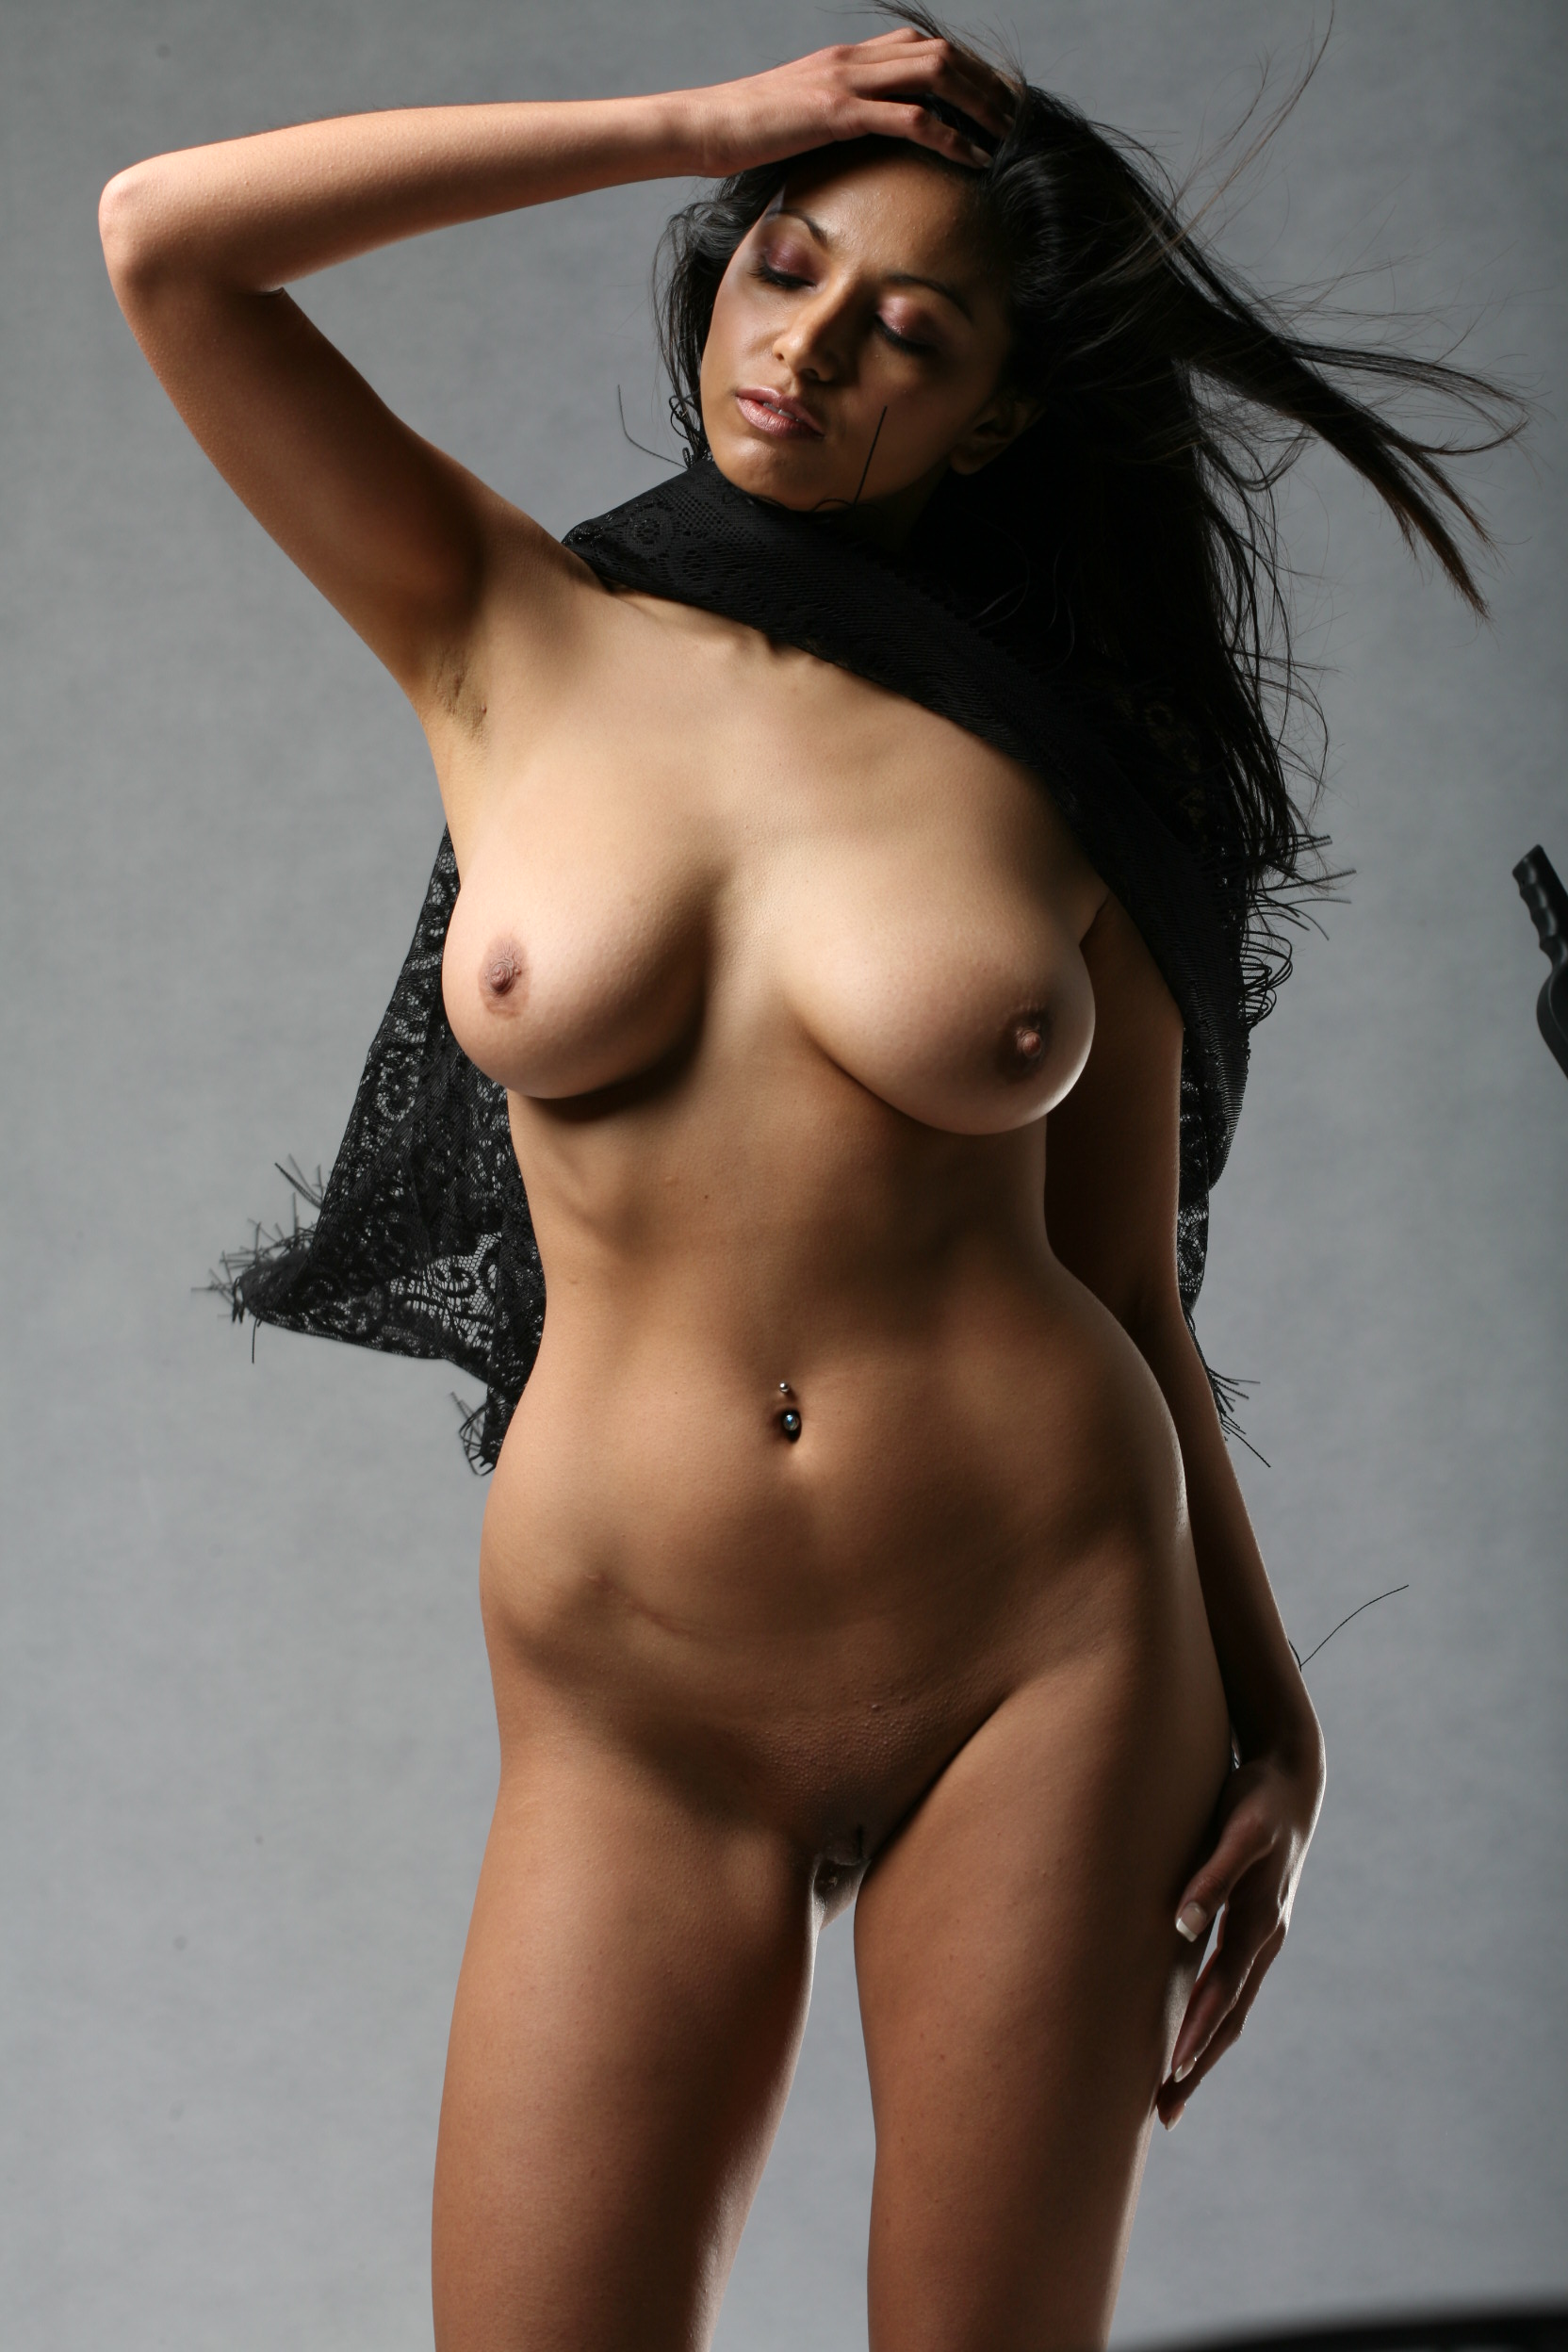 Natt chanapa nude photo